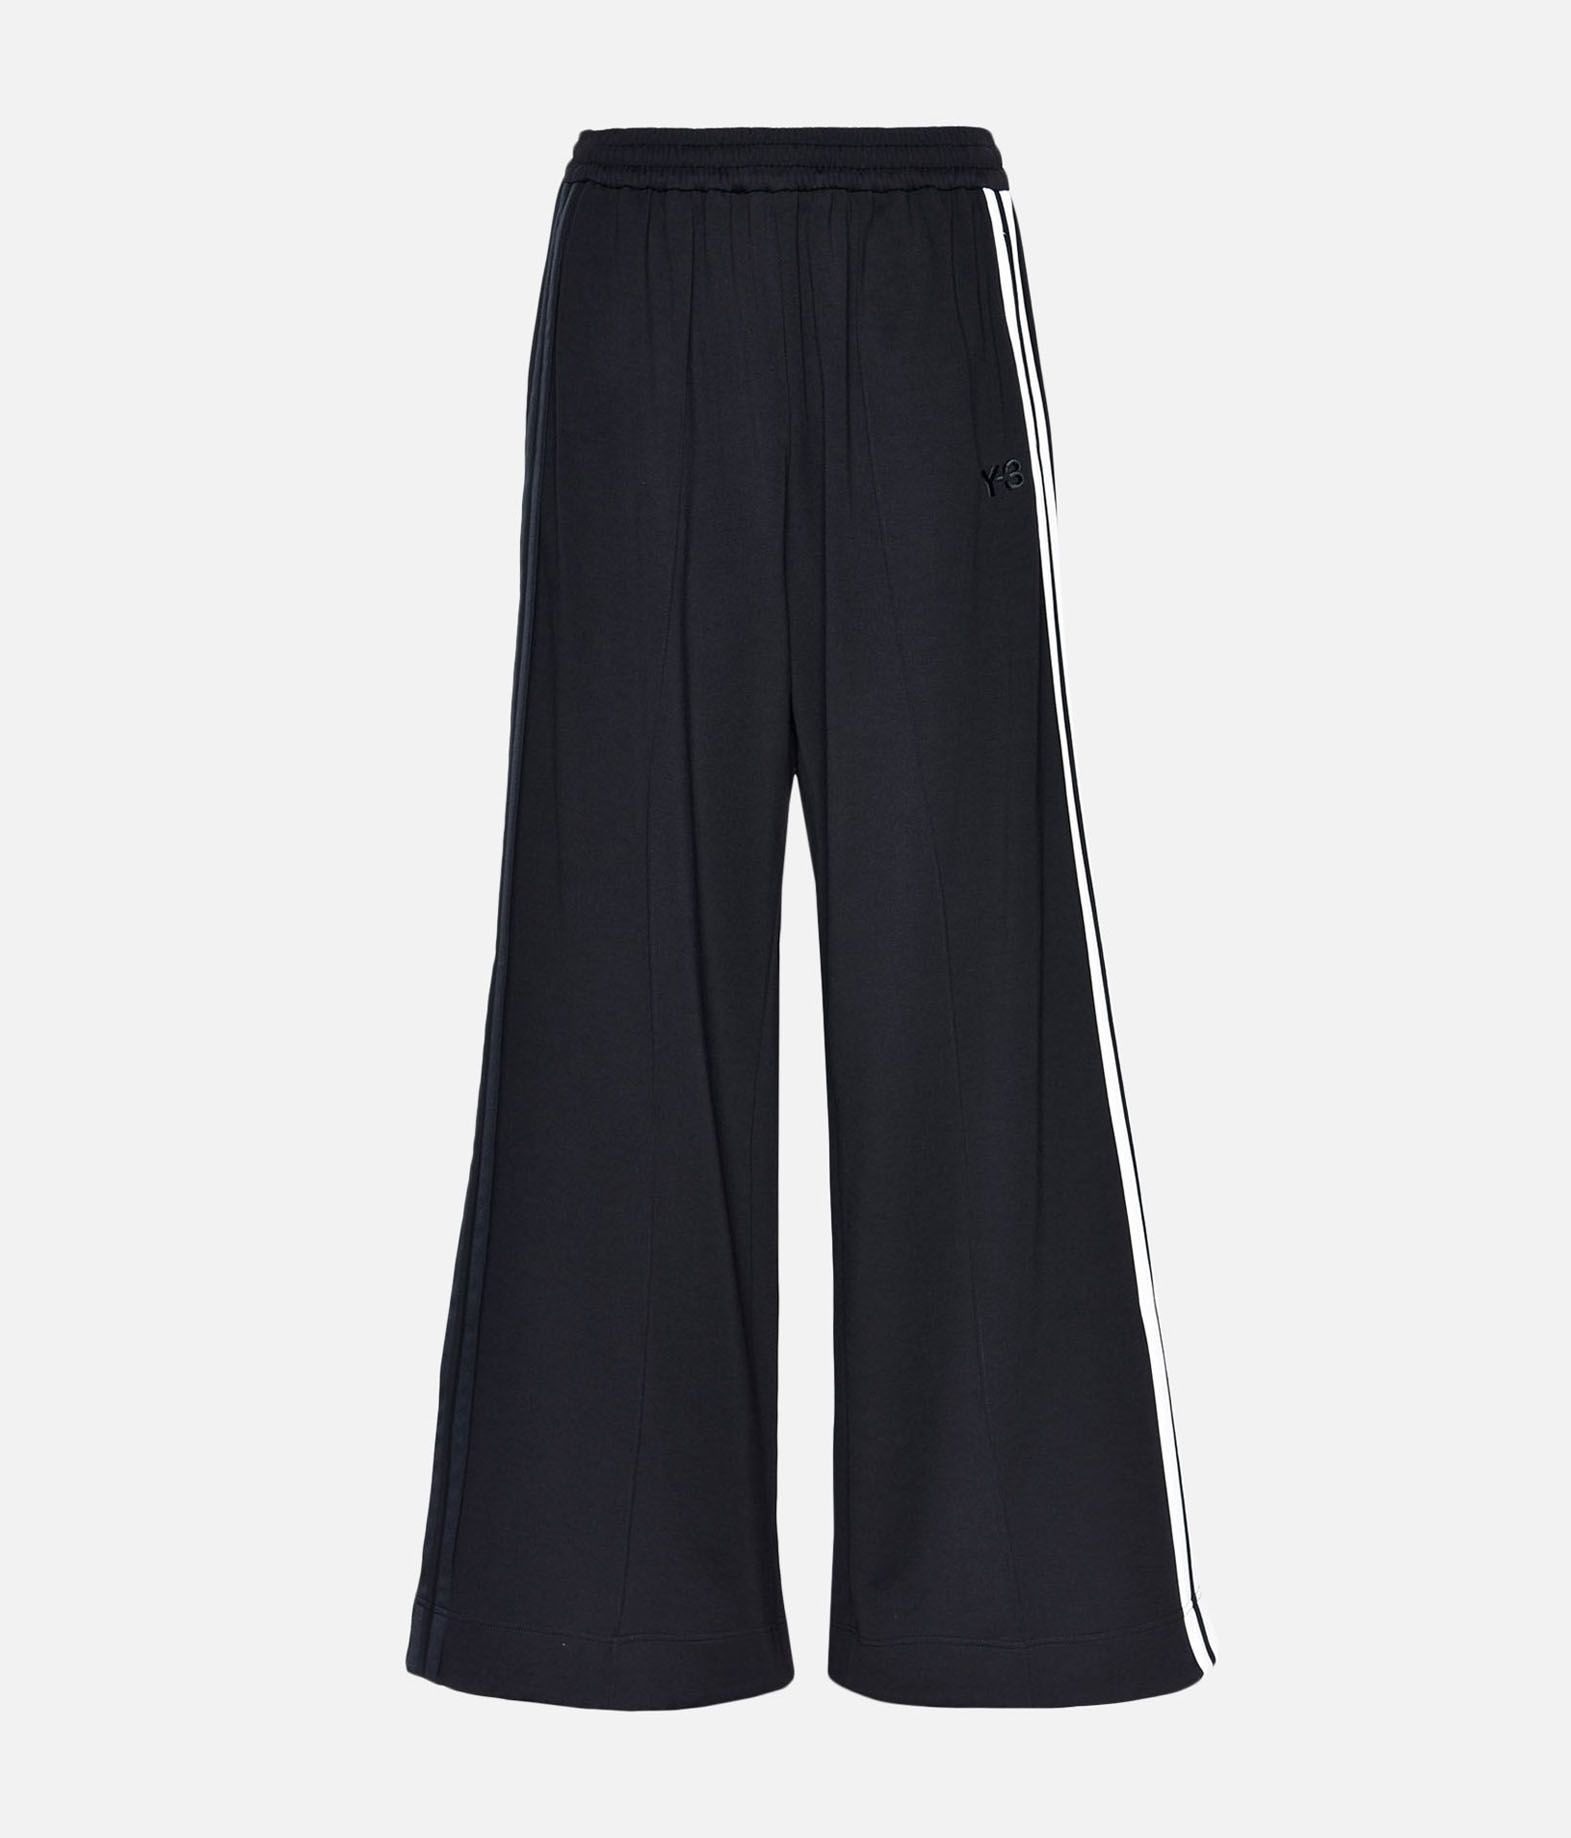 Y-3 Y-3 3-Stripes Selvedge Matte Track Pants Track pant Woman f